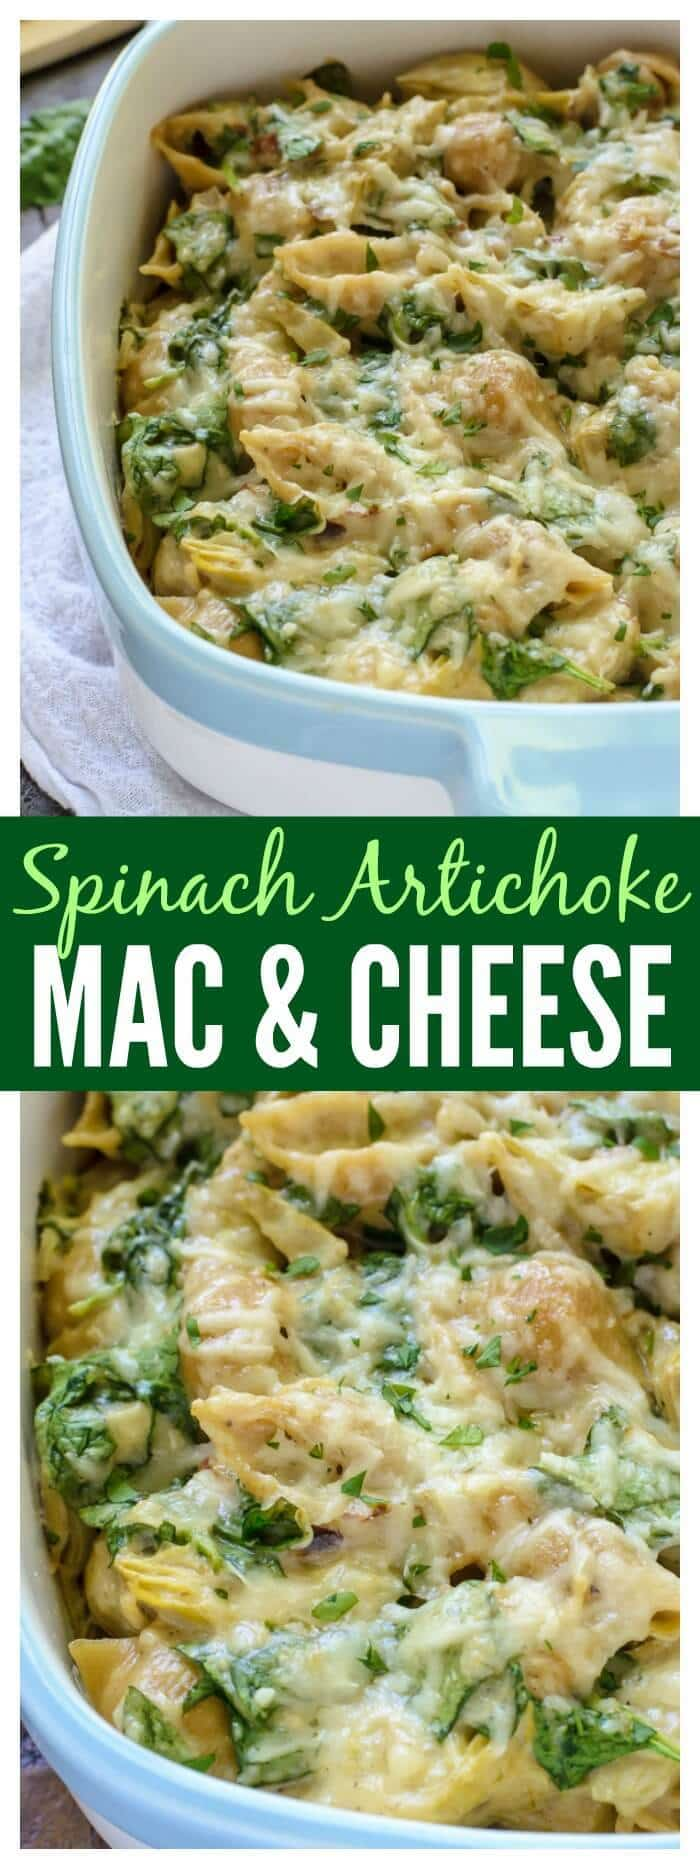 Everyone's favorite Spinach Artichoke Dip in Mac and Cheese form! A ...